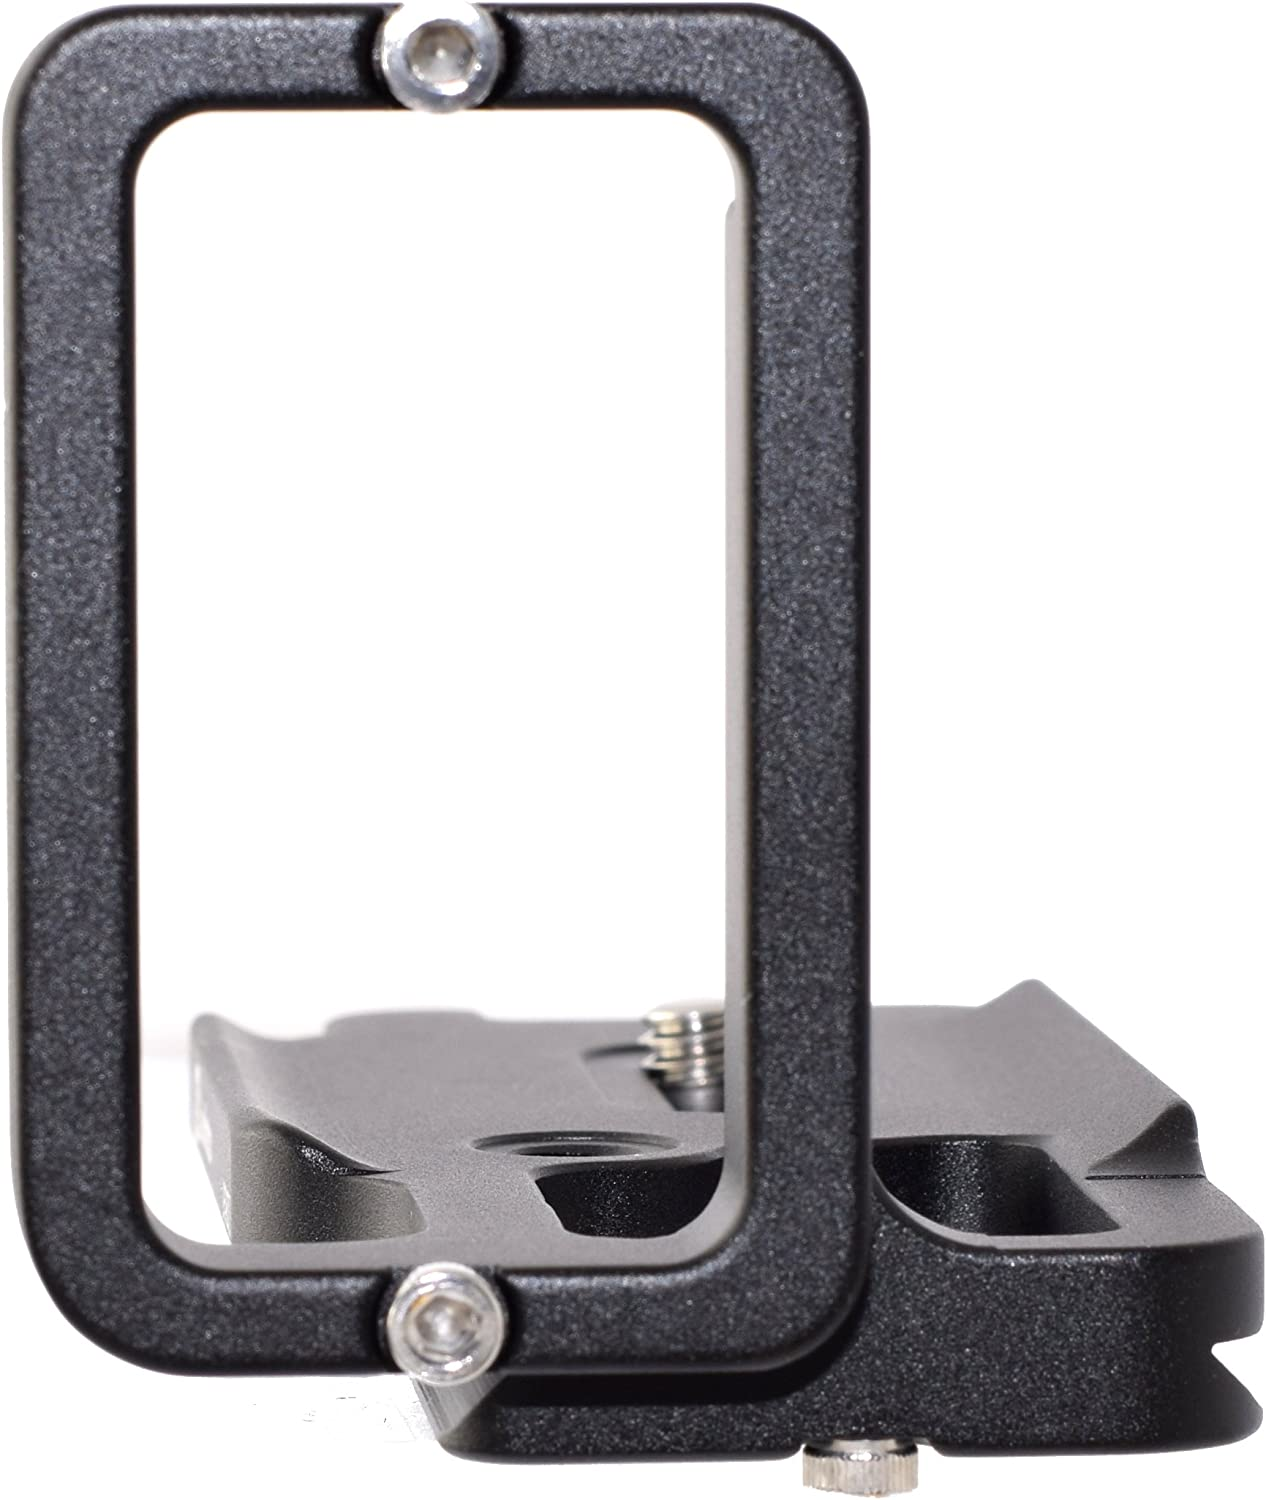 SUNWAYFOTO PCL-6DII Dedicated L Plate for Canon EOS 6D Mark II Camera Arca Compatible Sunway 6Dii